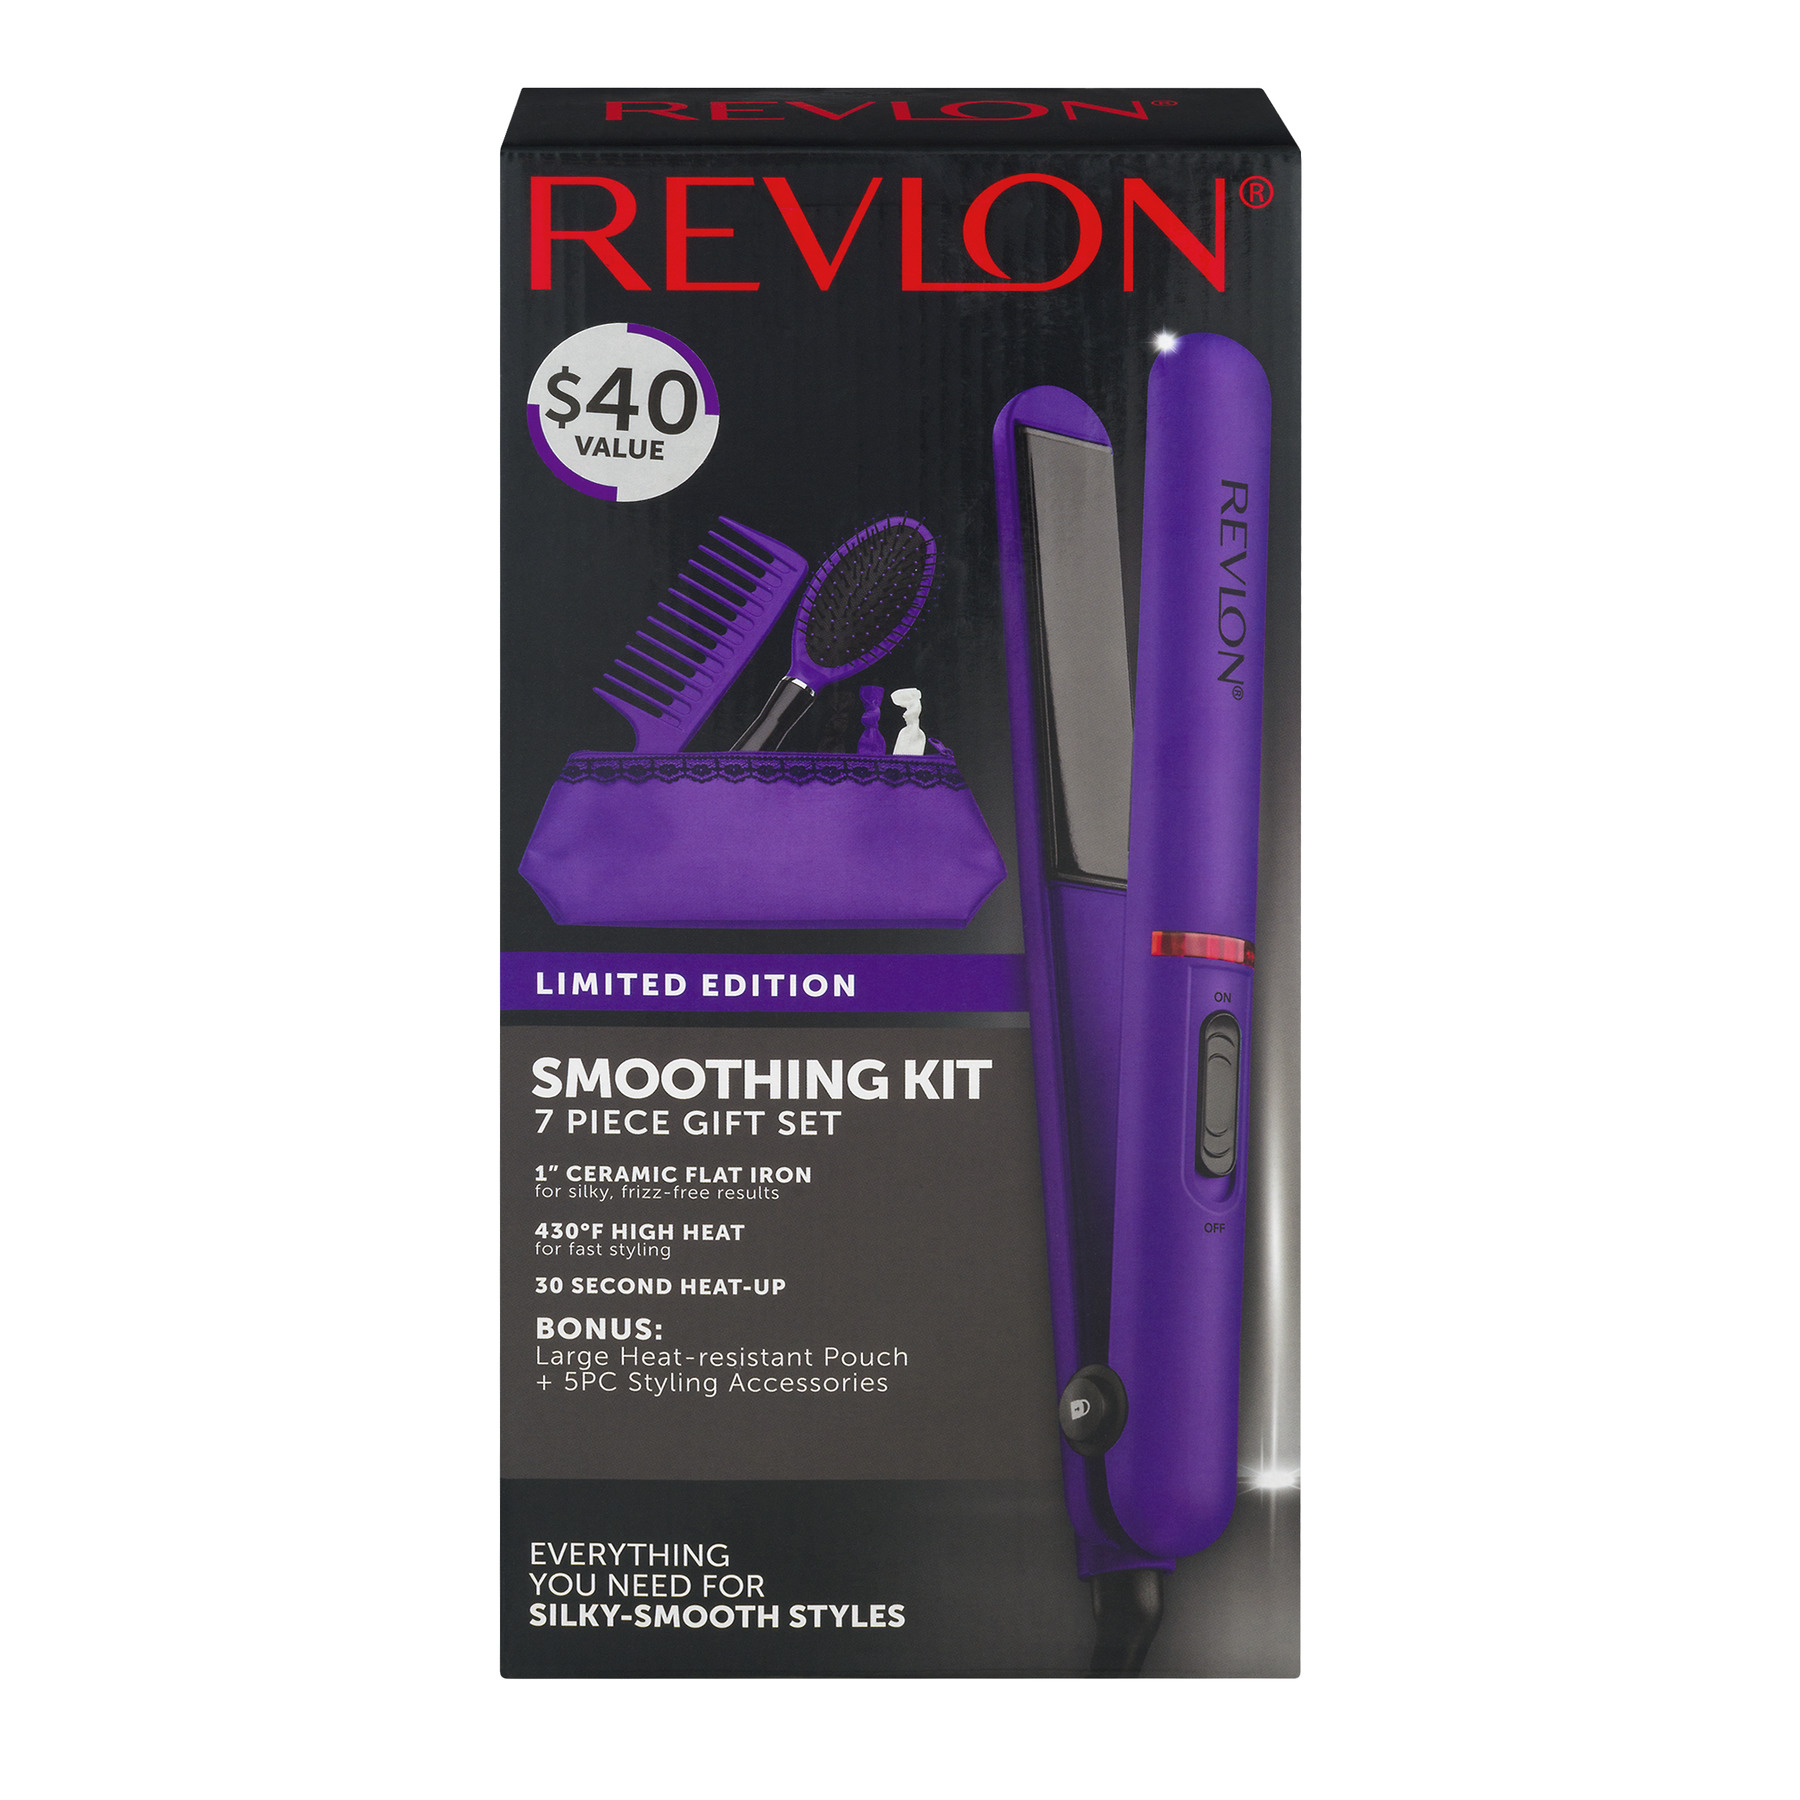 Revlon Flat Iron Straightening and Smoothing Kit, Purple 7 Piece Gift Set Limited Edition